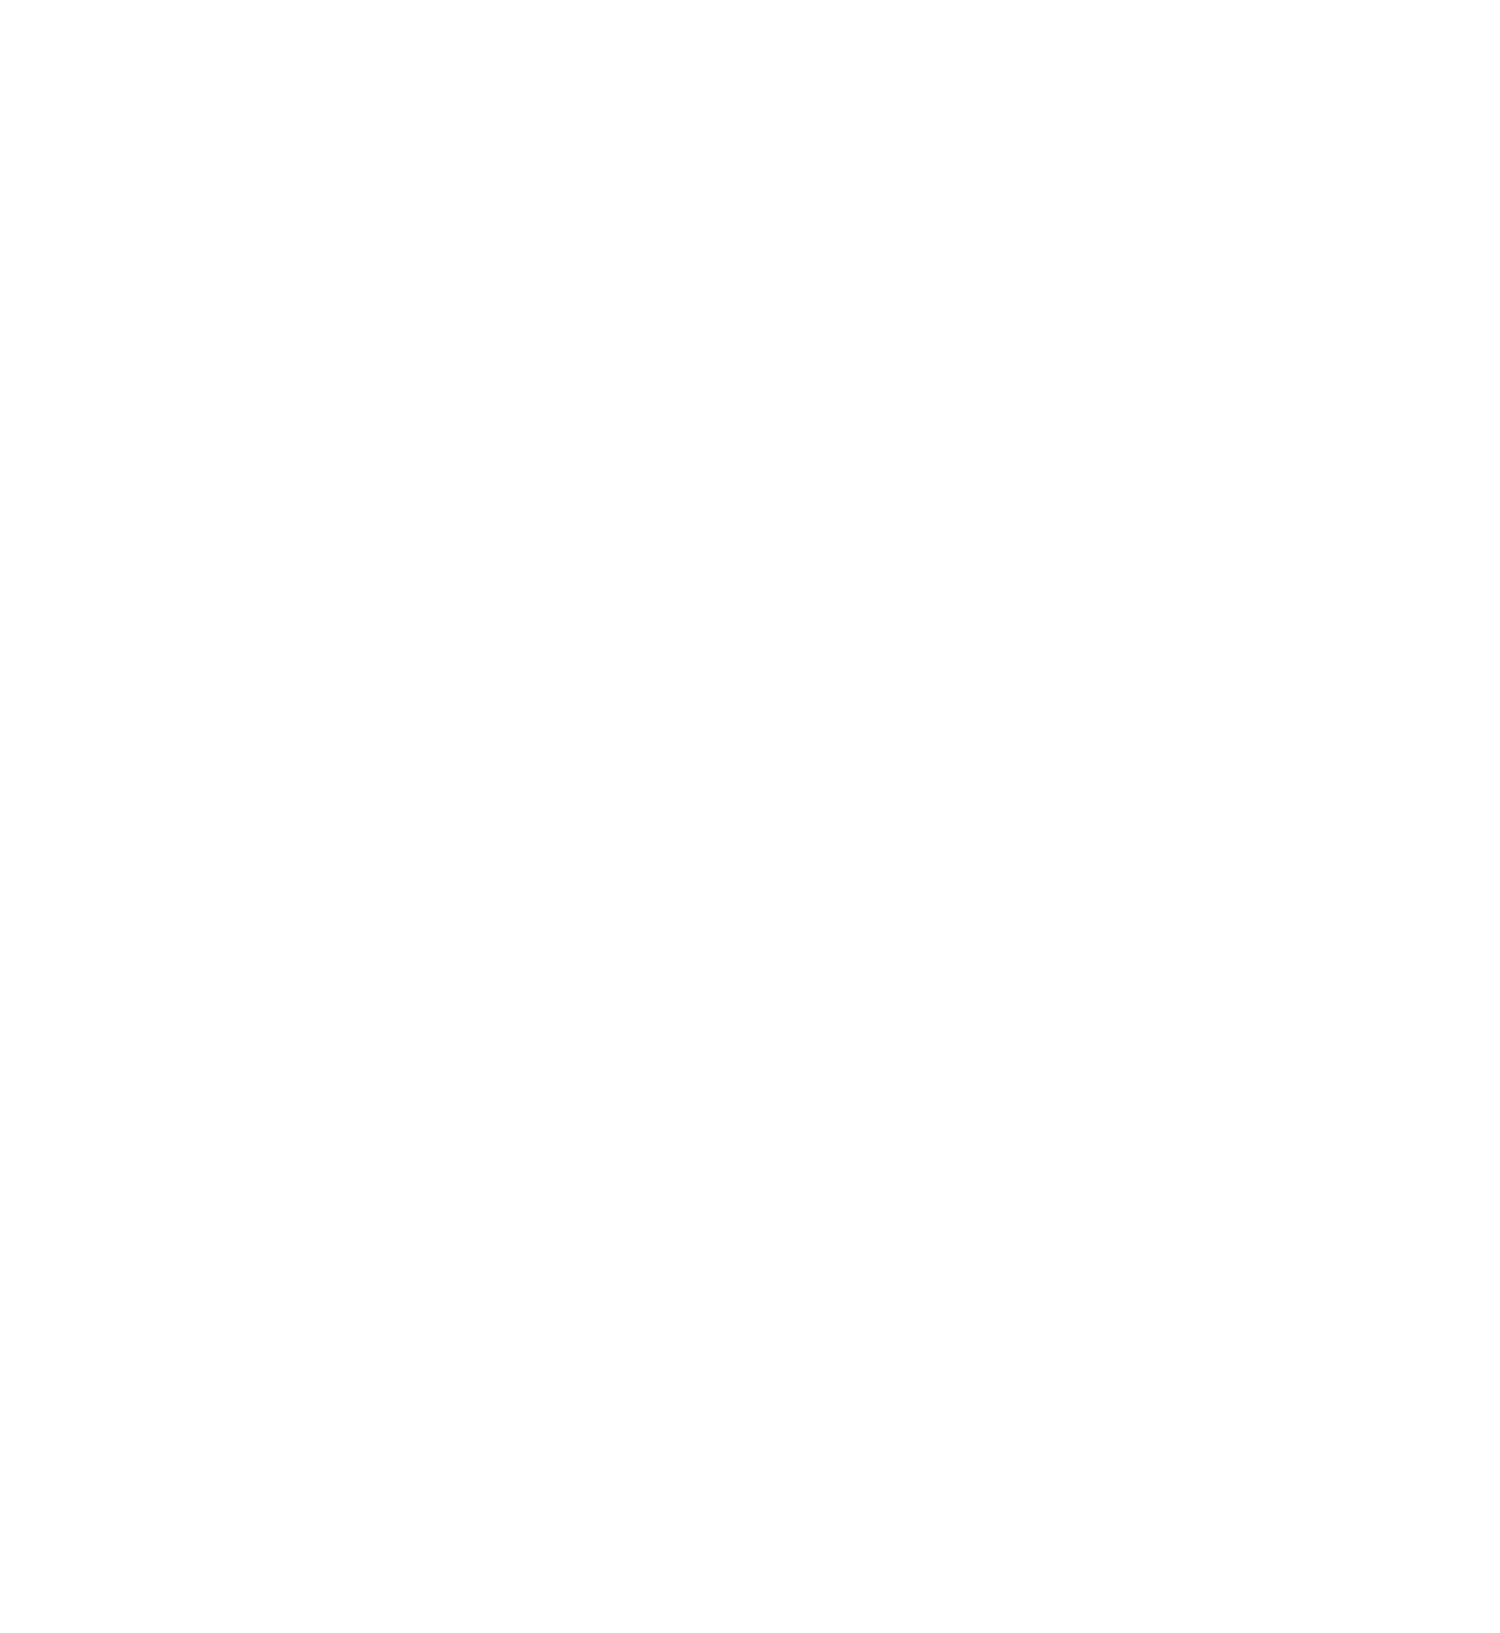 The Food Defense Conference 2016